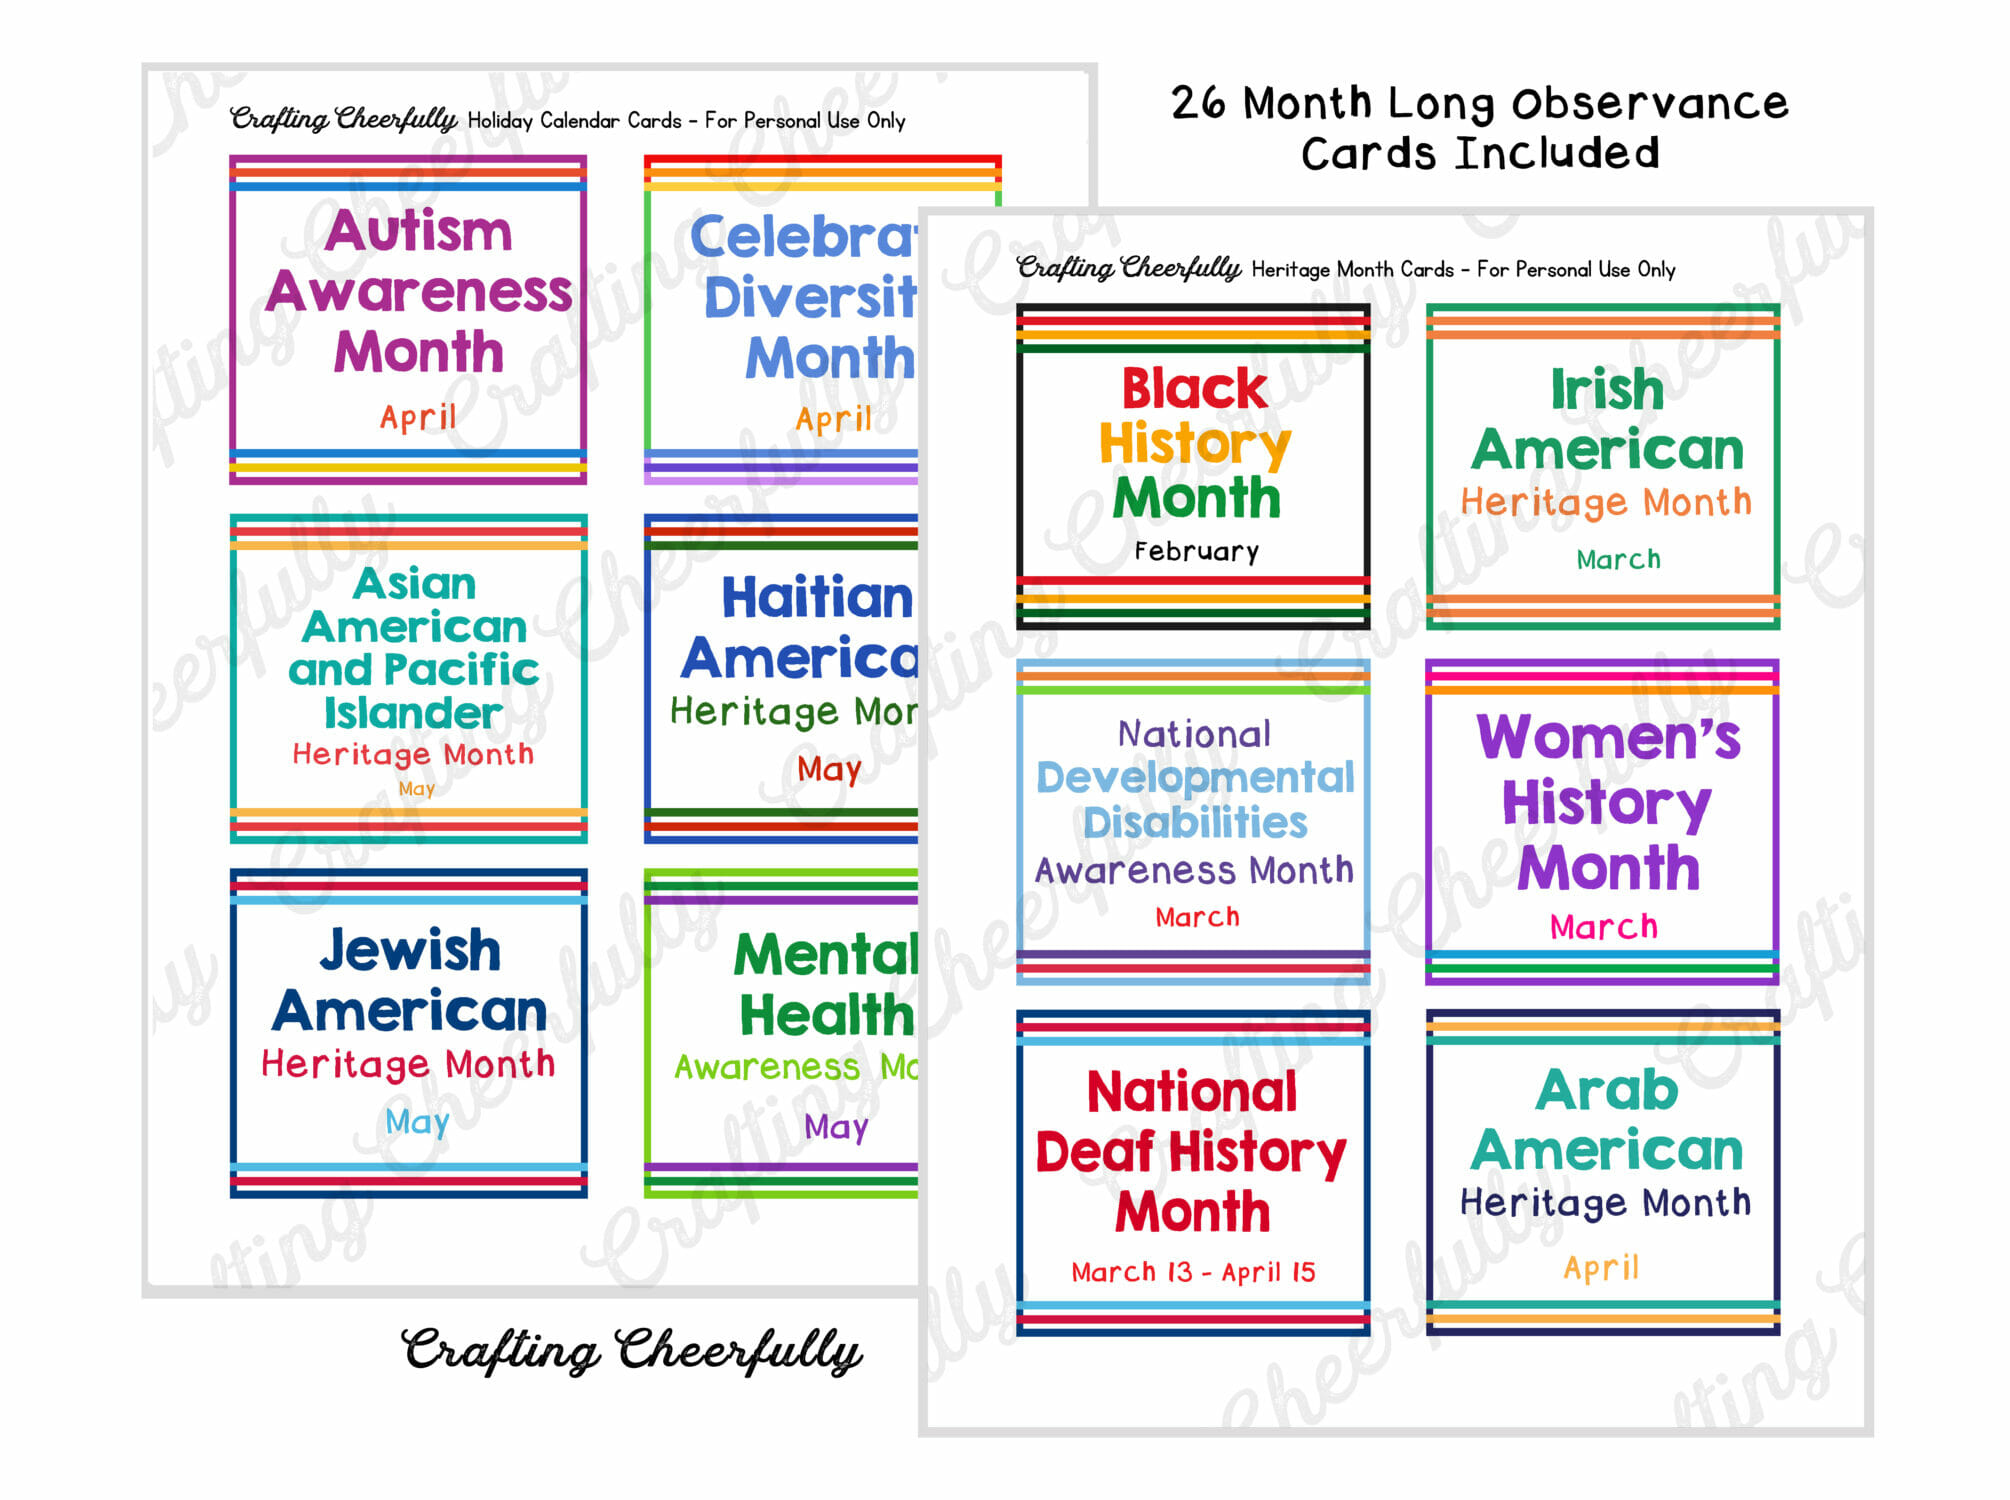 Month Long Observance Cards